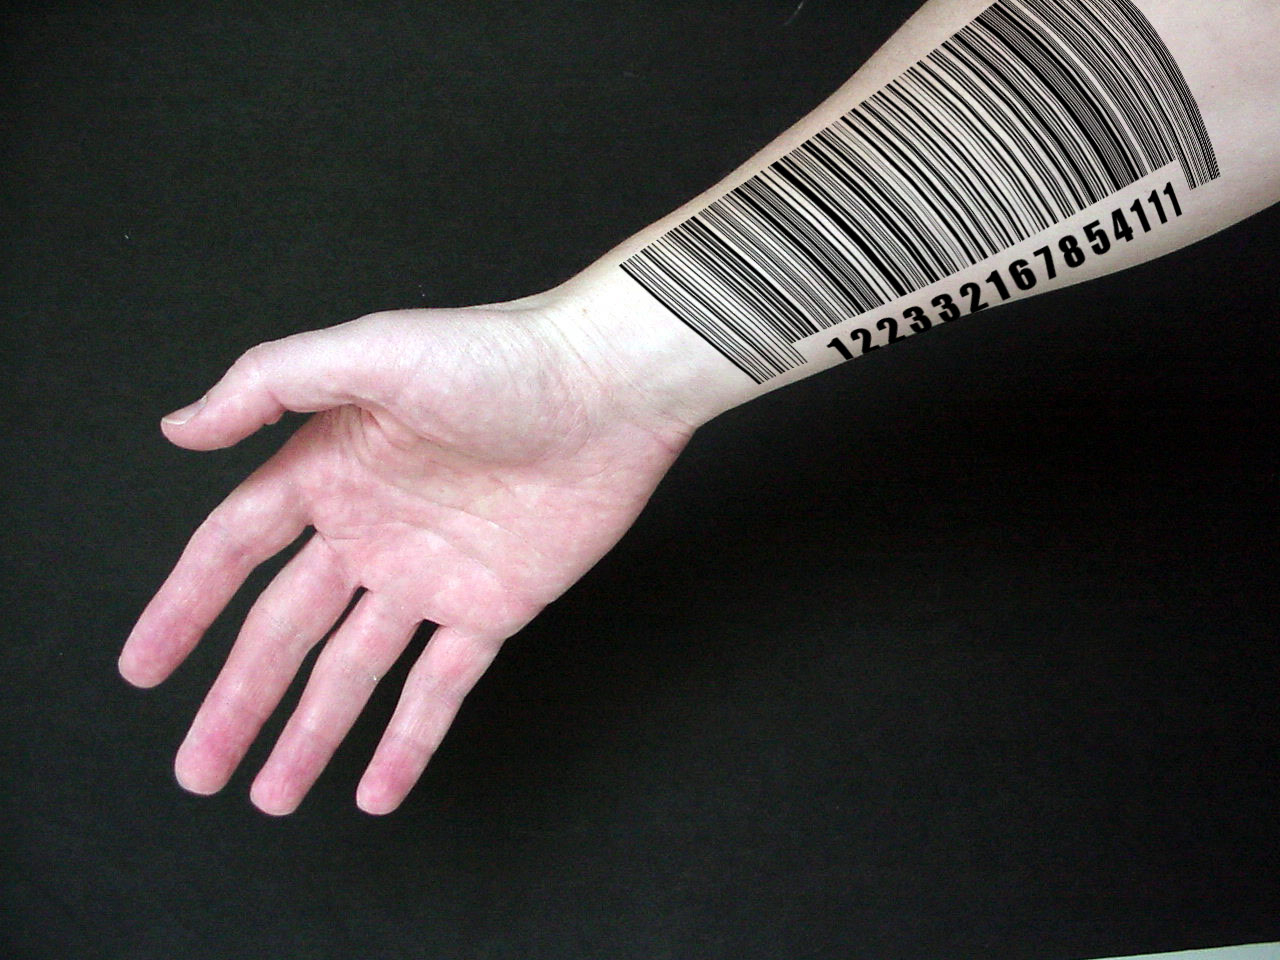 Images Of Barcode Tattoo Arm Spacehero intended for dimensions 1280 X 960